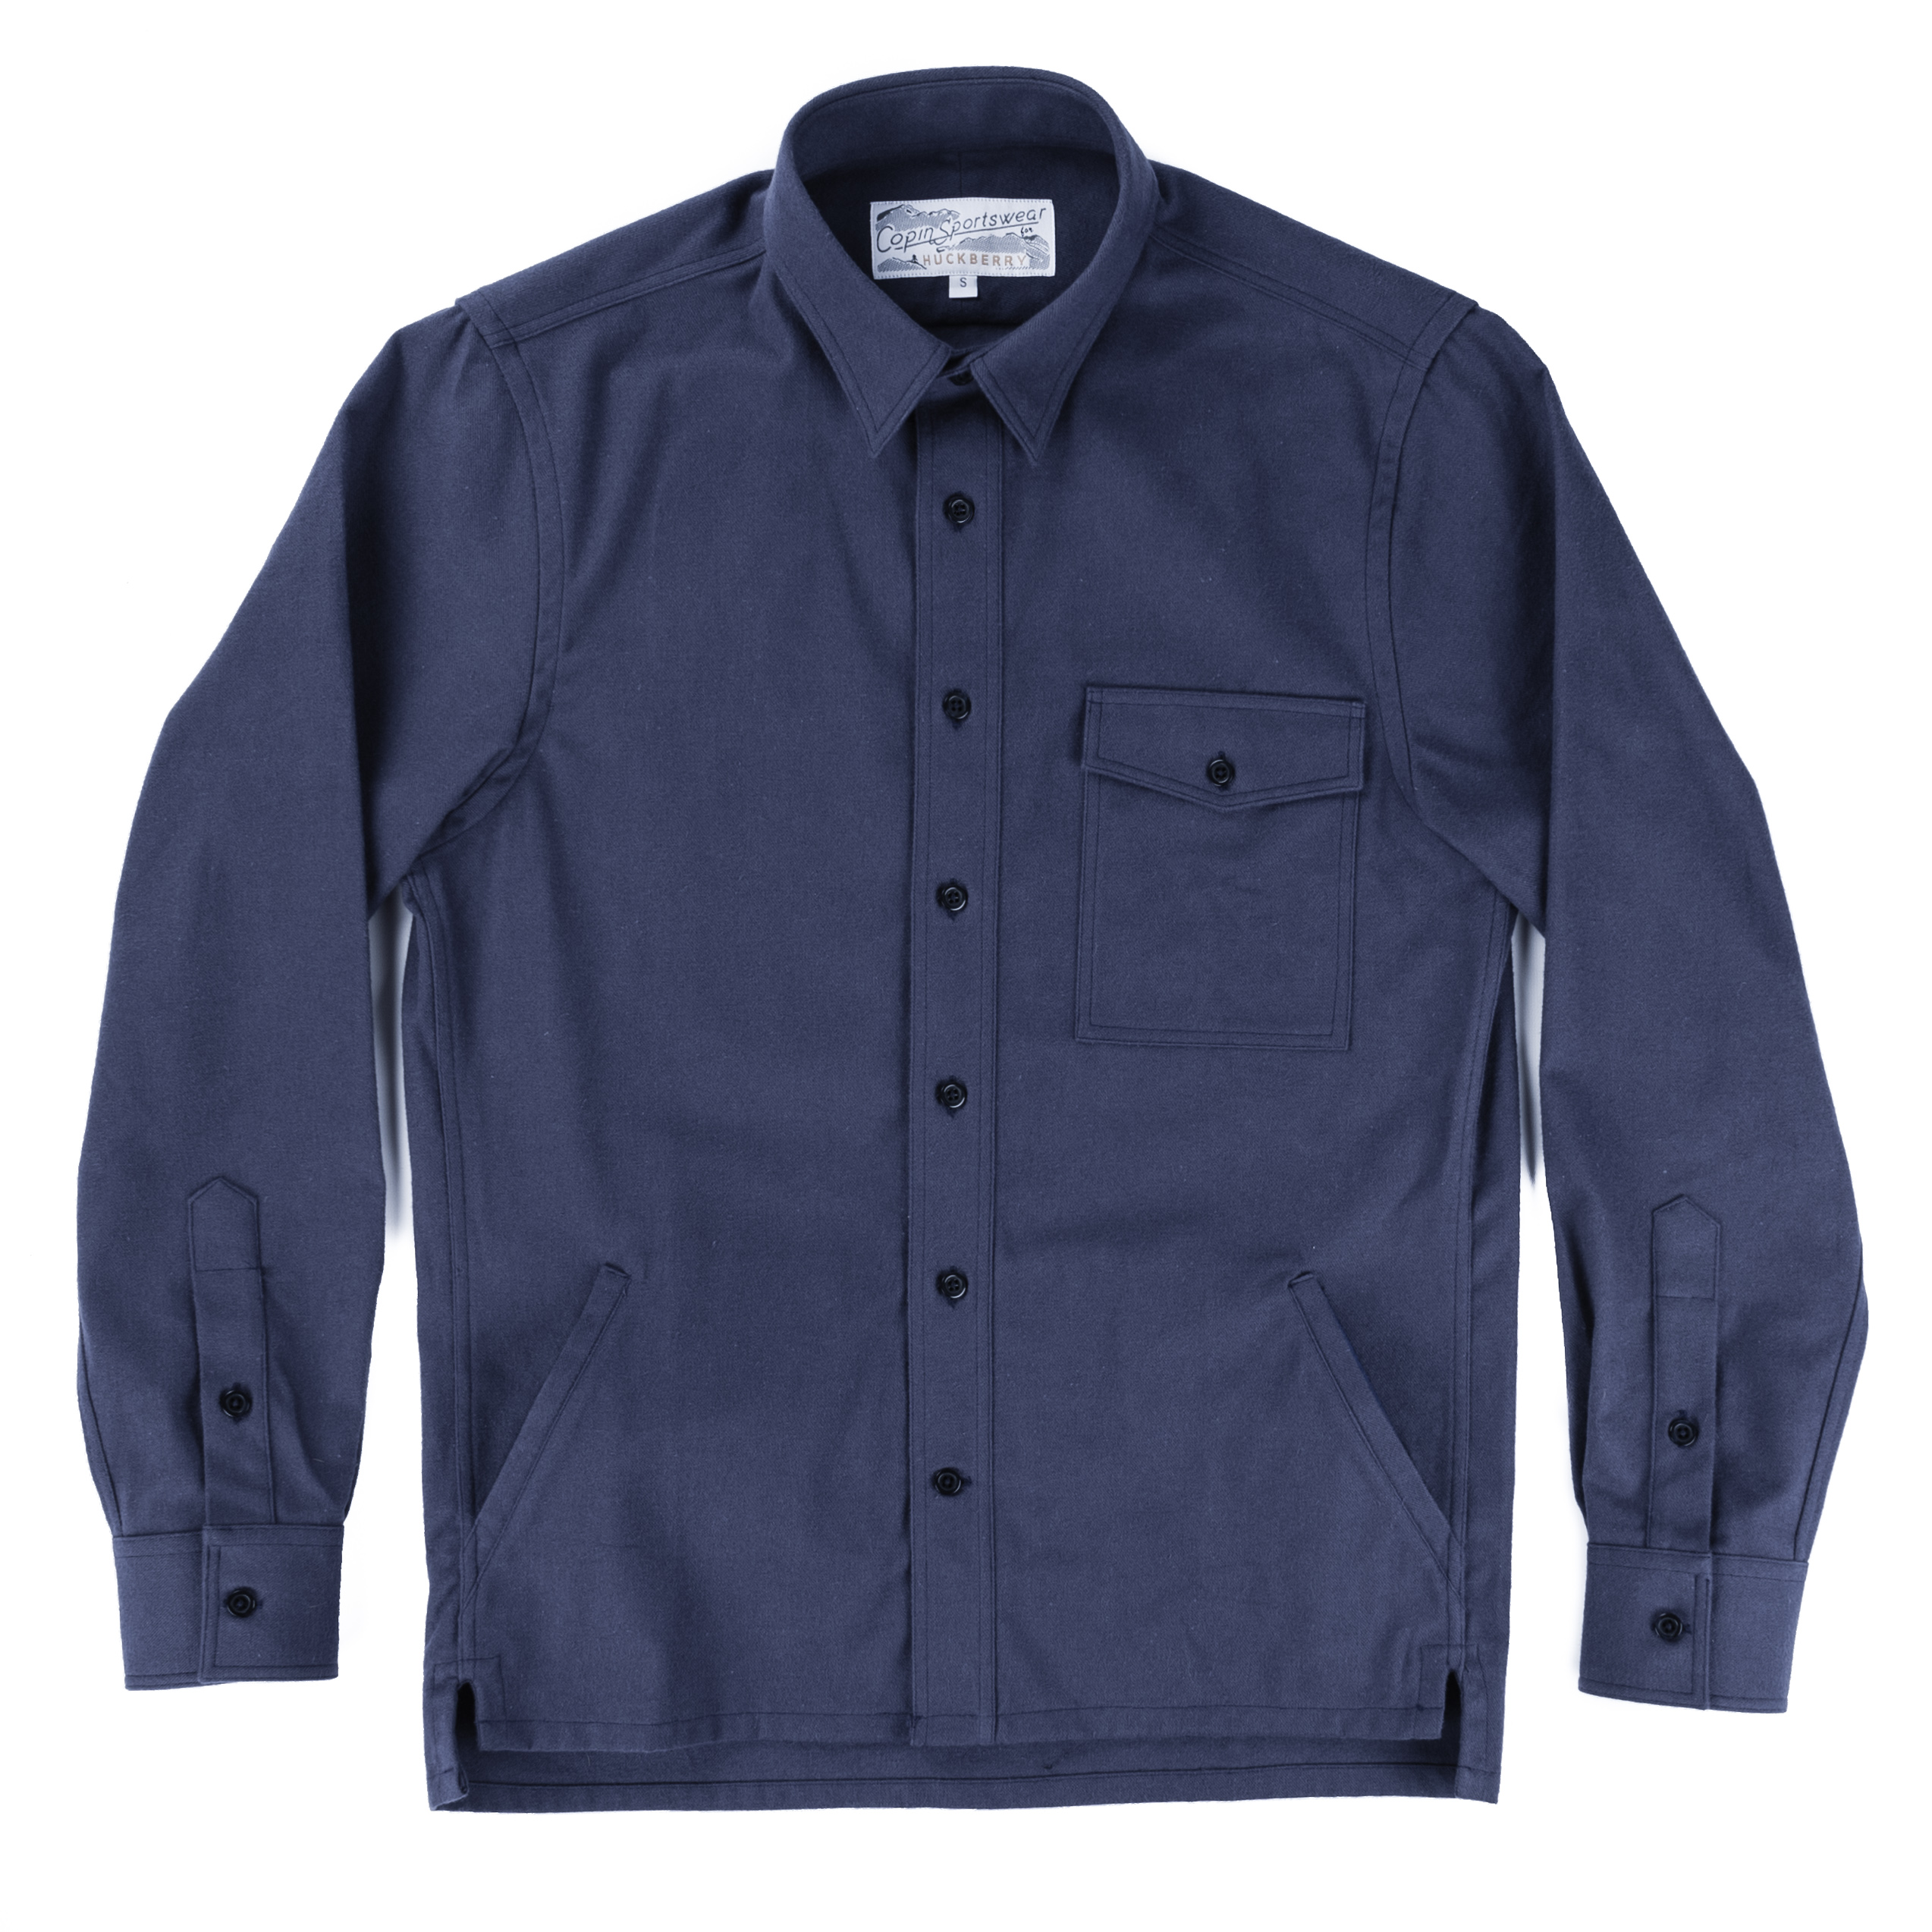 Copin Sportswear Brushed Cotton Shirt Jacket | Huckberry